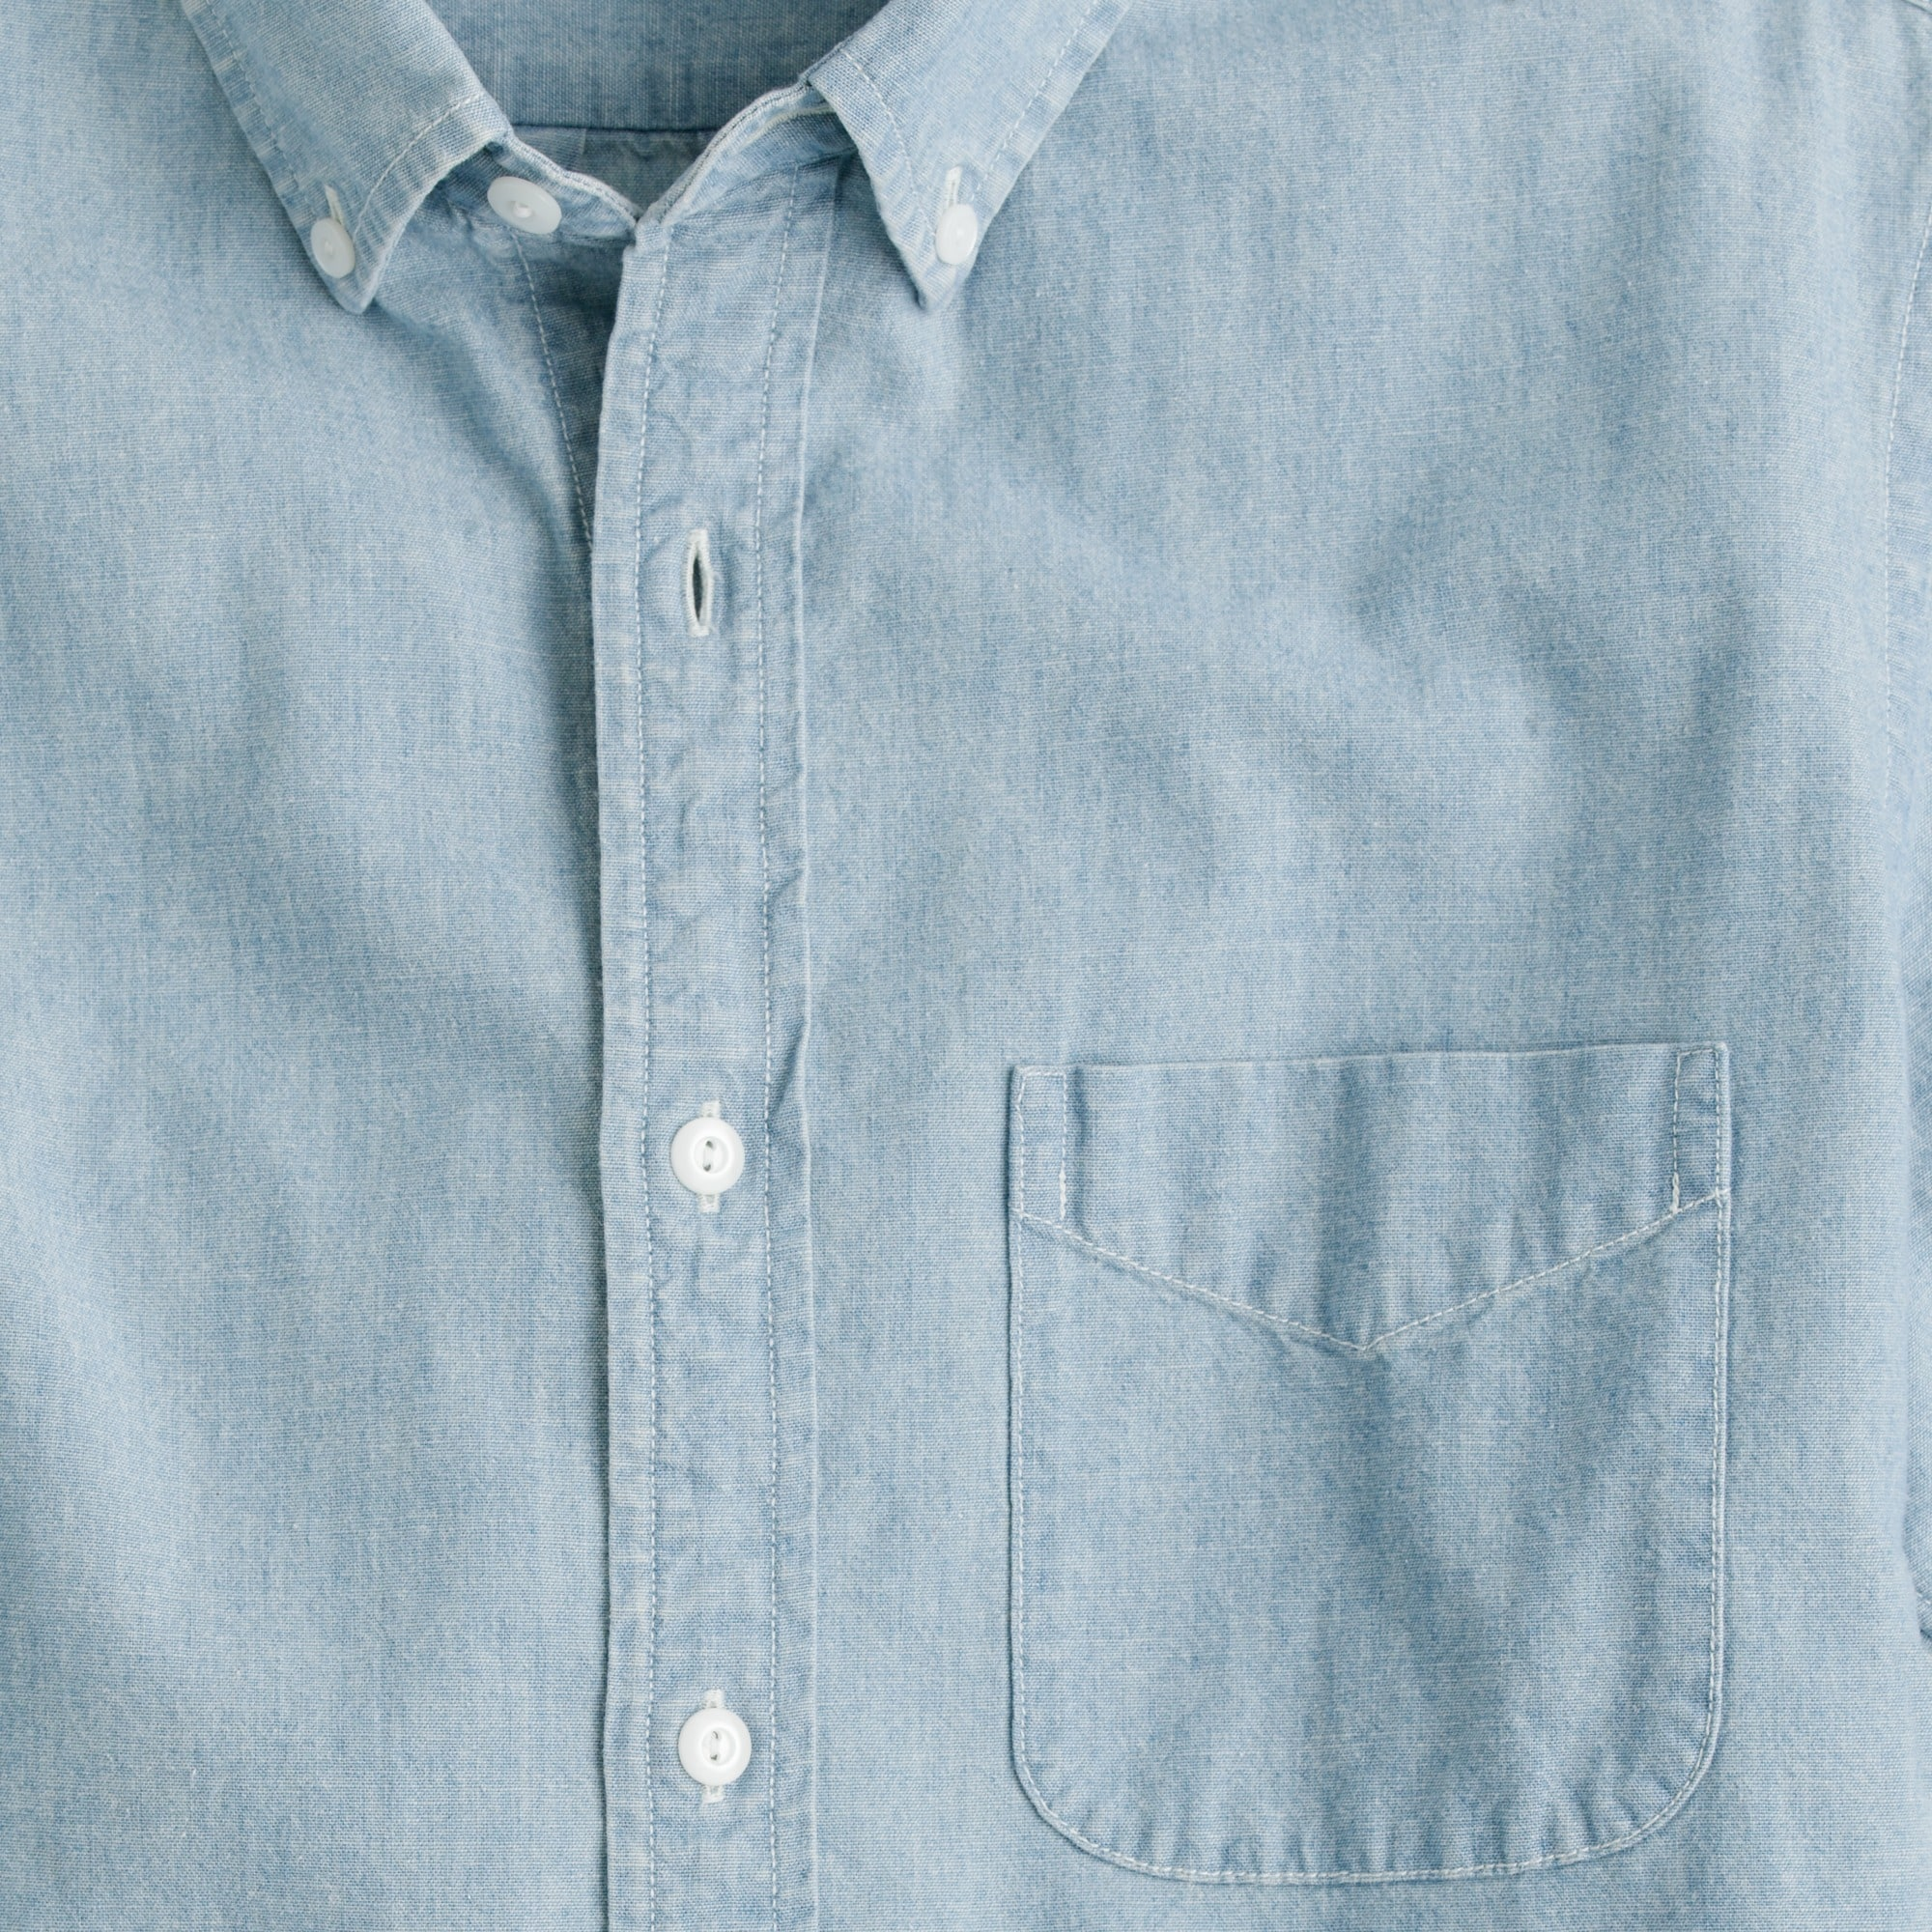 Image 3 for Short-sleeve shirt in Japanese indigo chambray